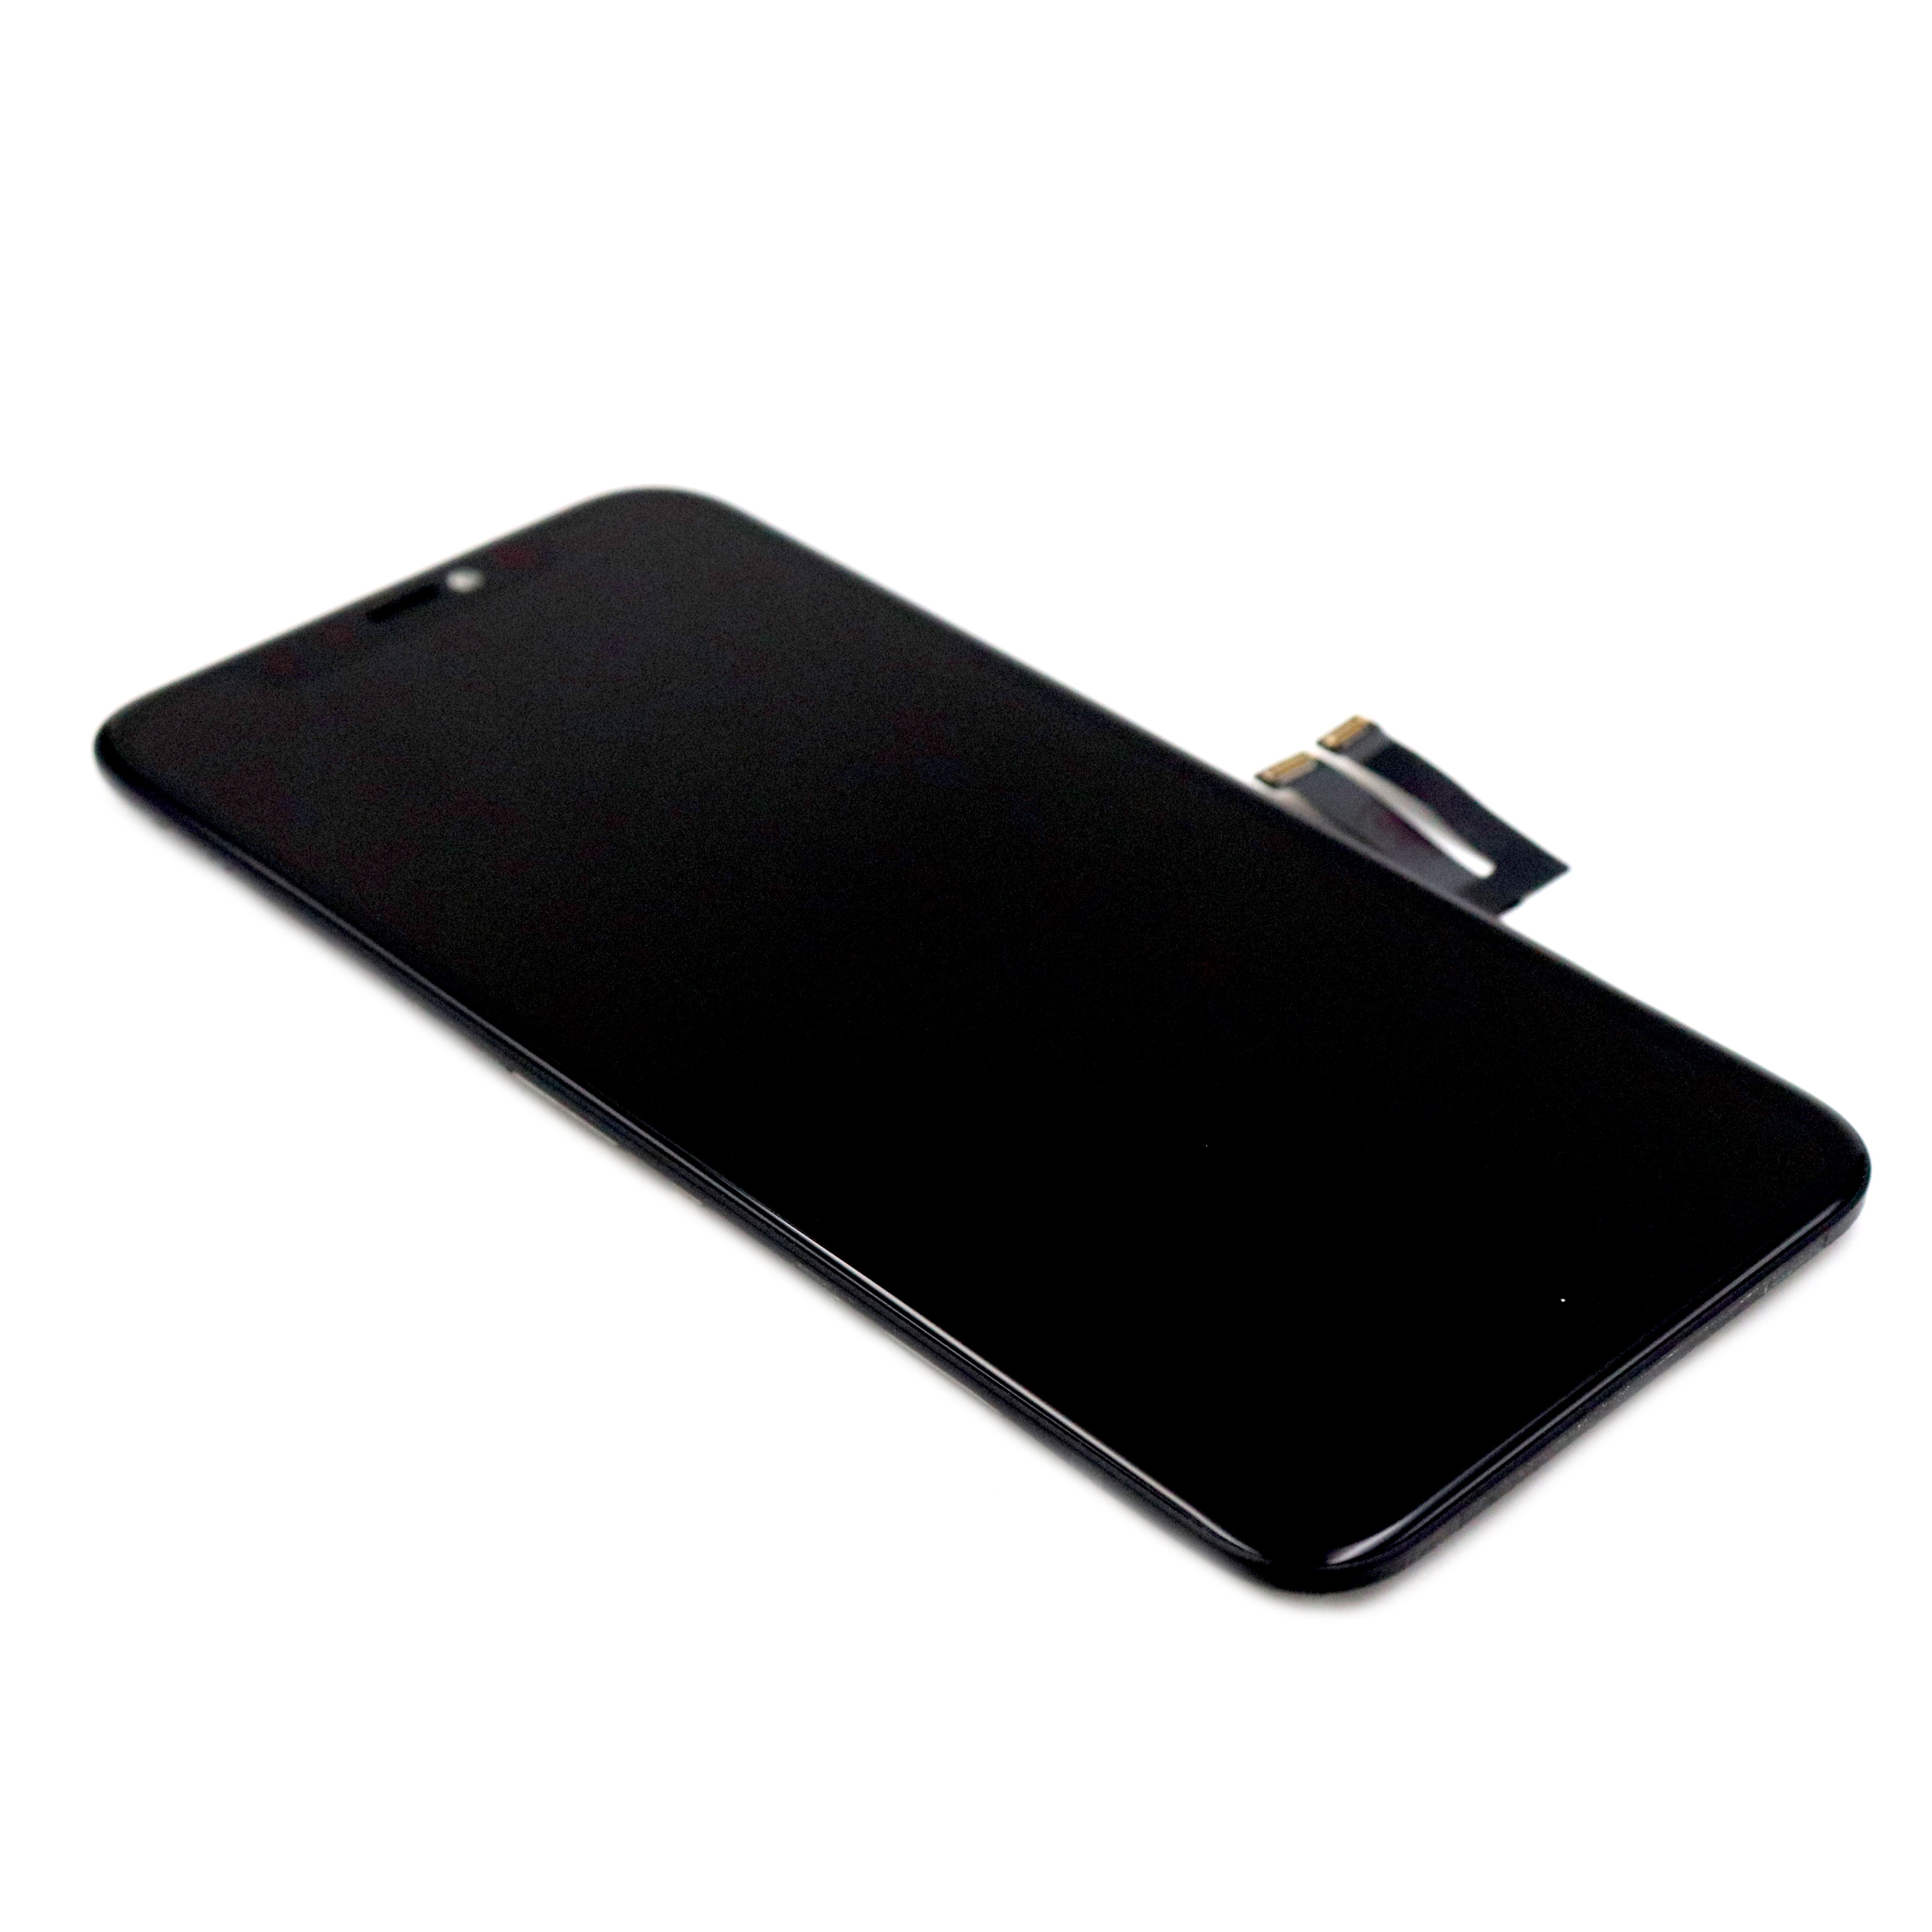 iPhone 11 Pro LCD Display Pulled Reparatie www.i-repaircenter.nl